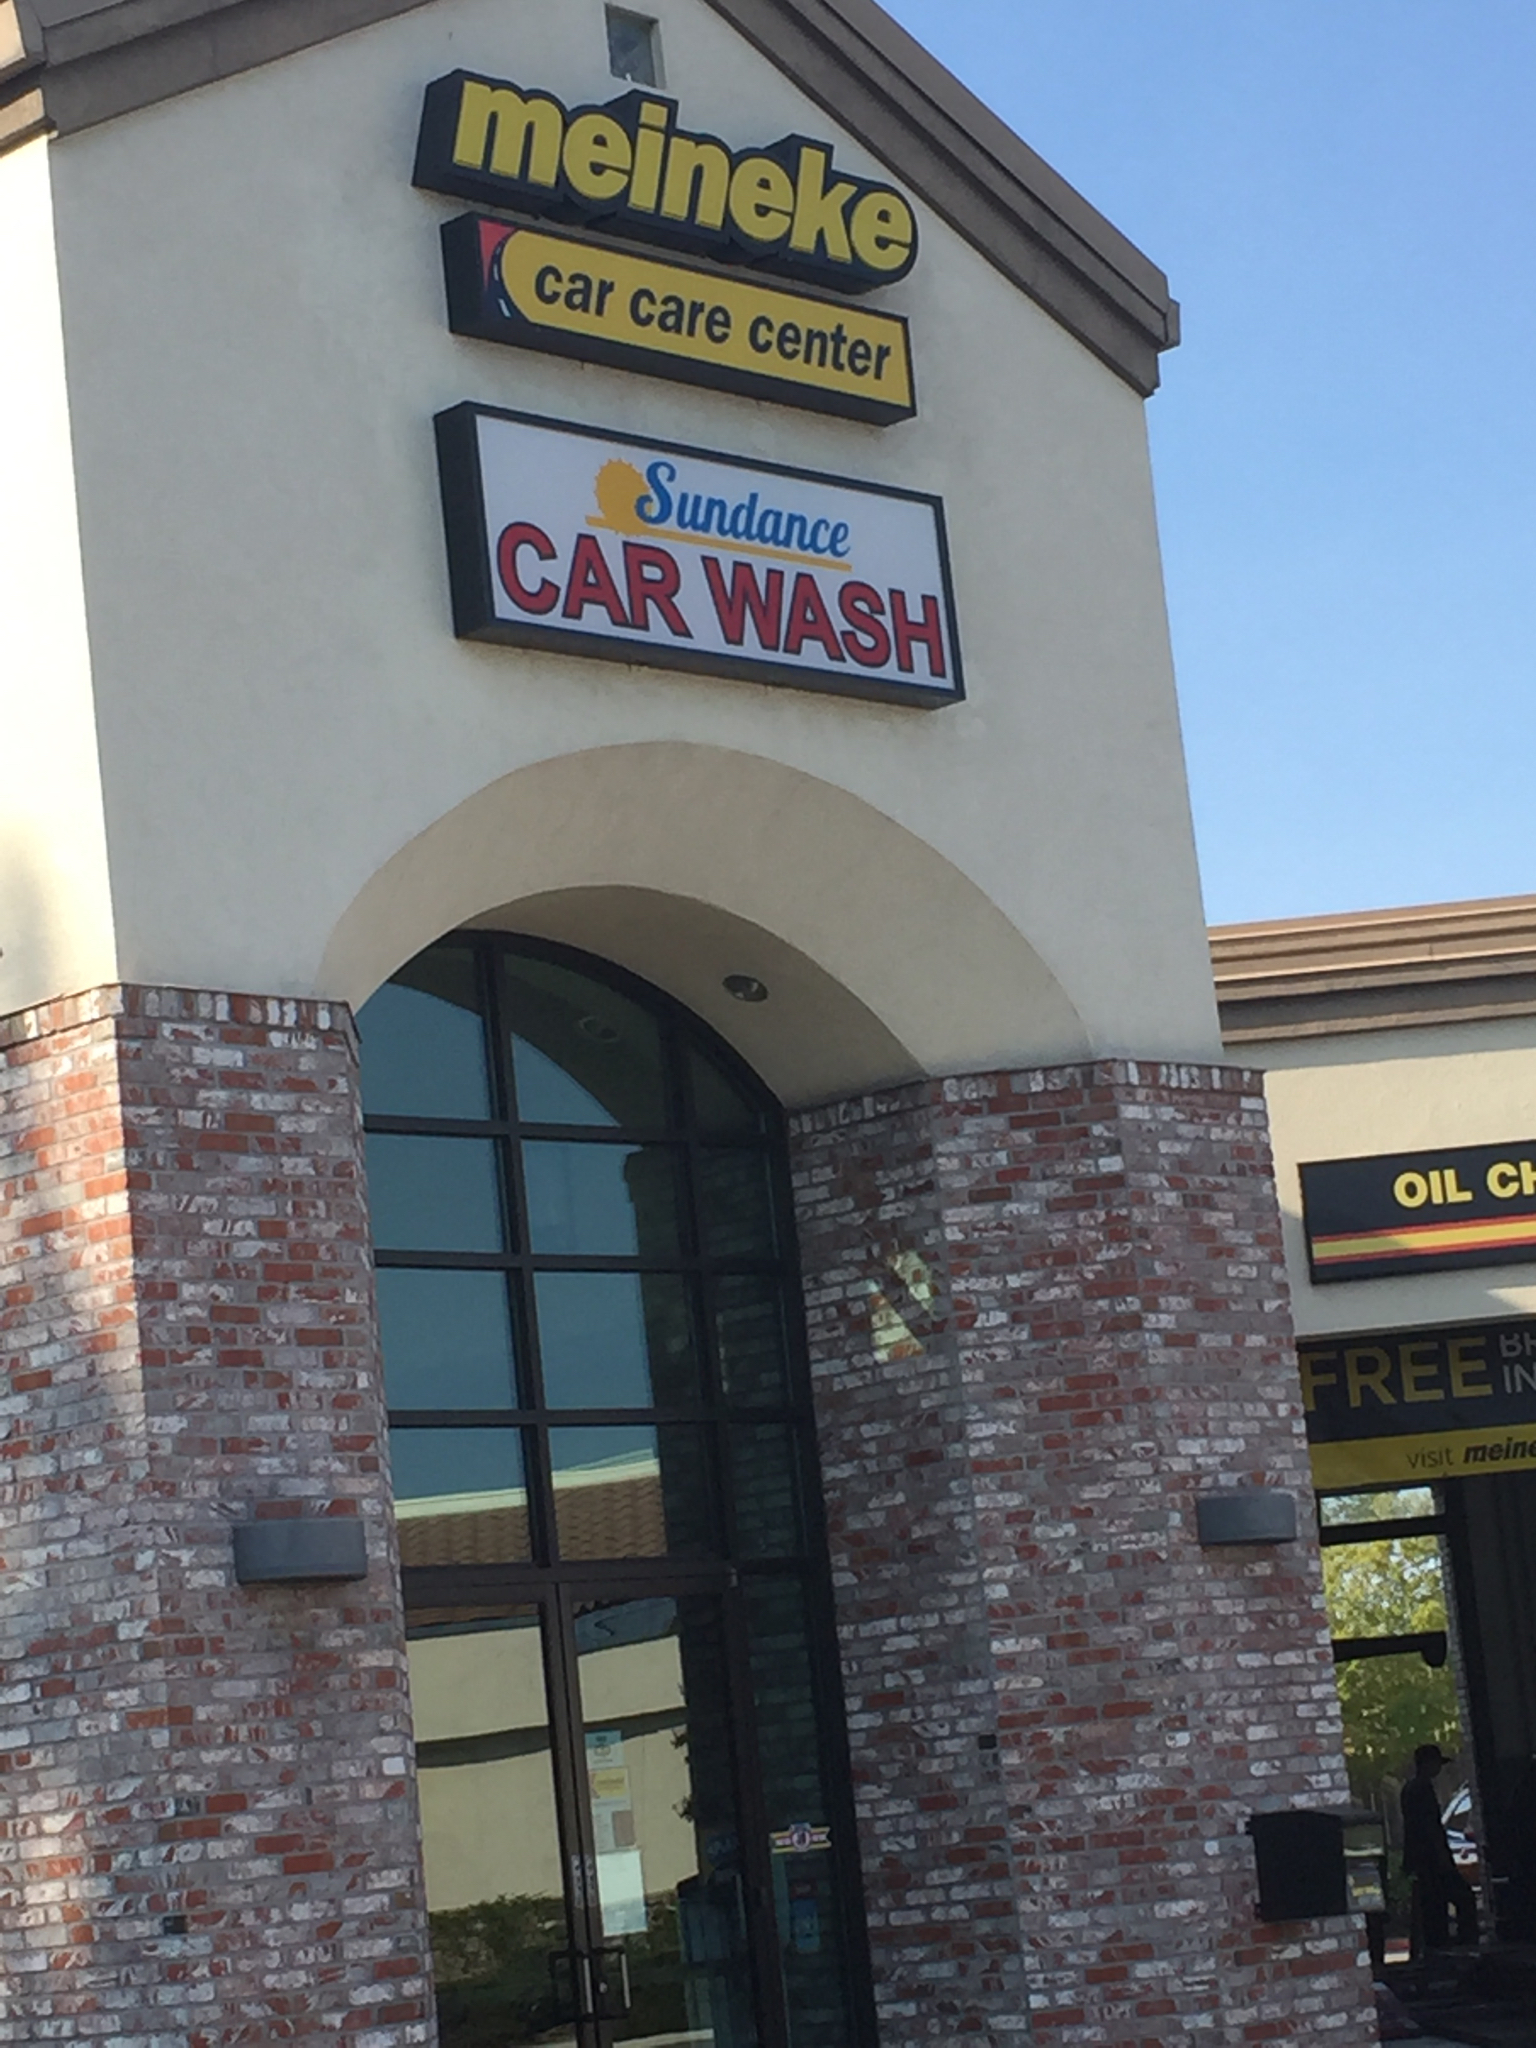 Sundance car wash quick lube 525 cirby way roseville ca 95678 sundance car wash quick lube 525 cirby way roseville ca 95678 yp solutioingenieria Images